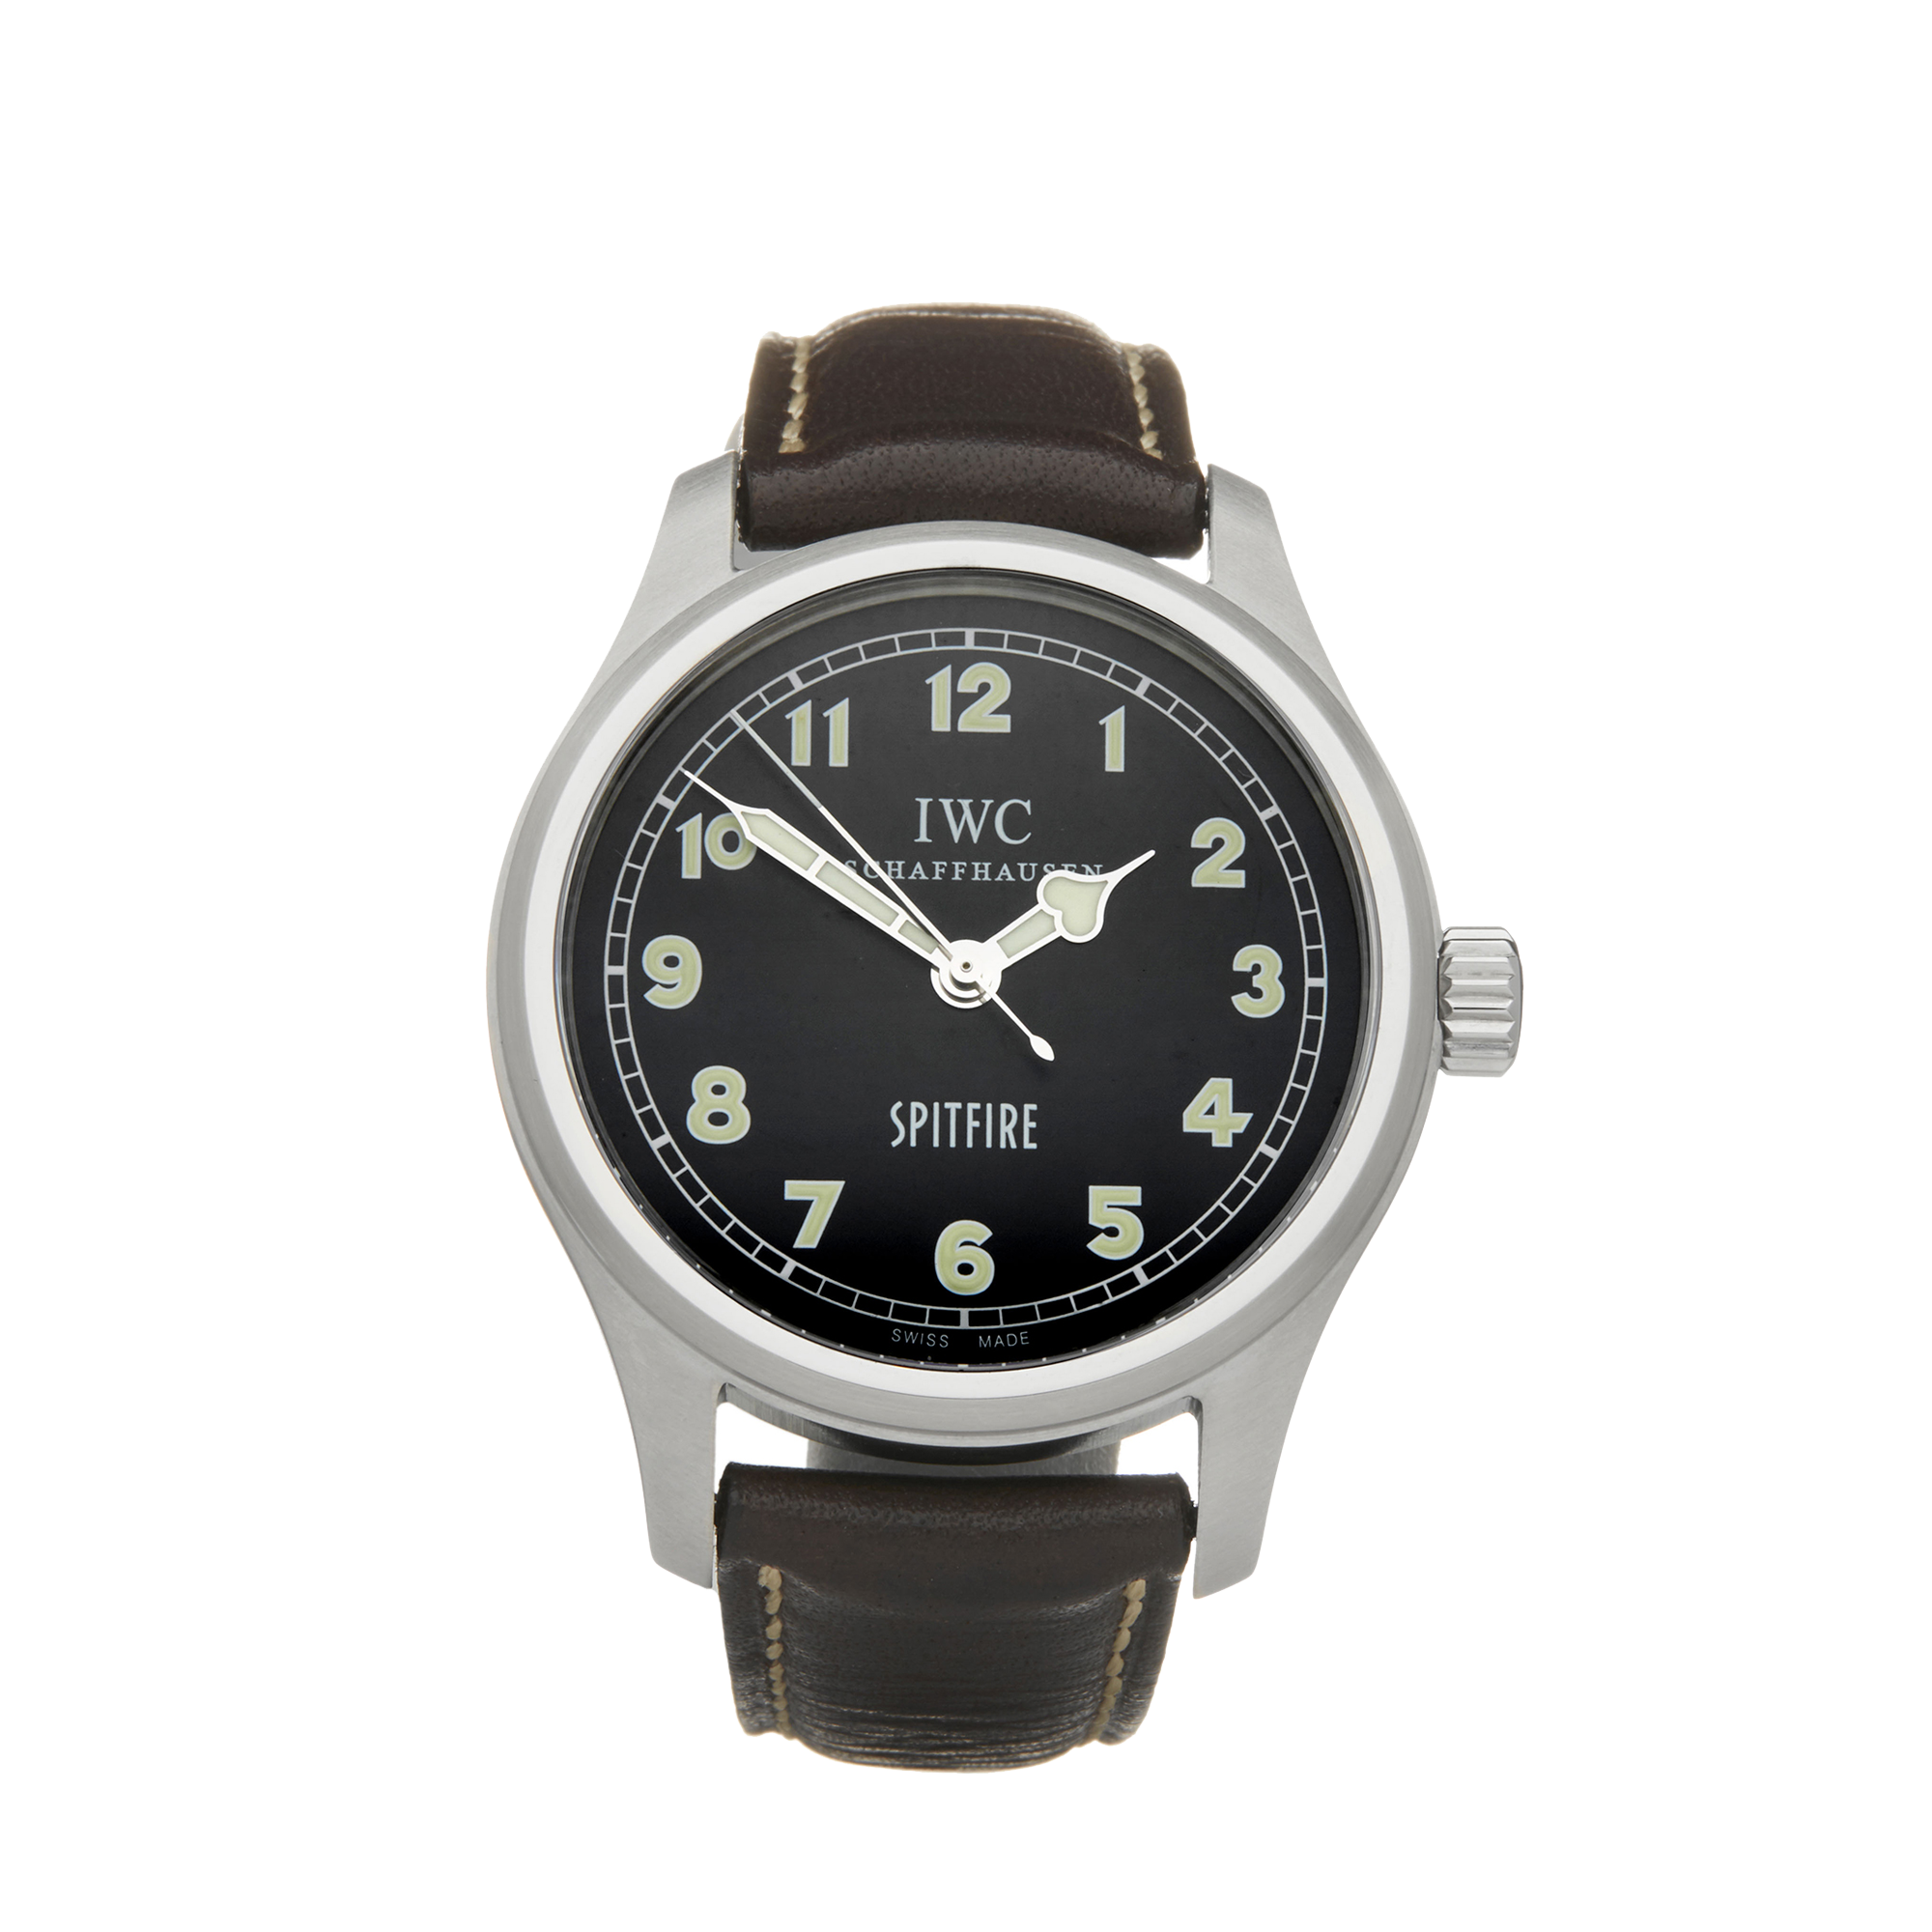 Pilot's Spitfire IW325305 Men Stainless Steel MK XV Limited Edition of 1000 pieces Watch